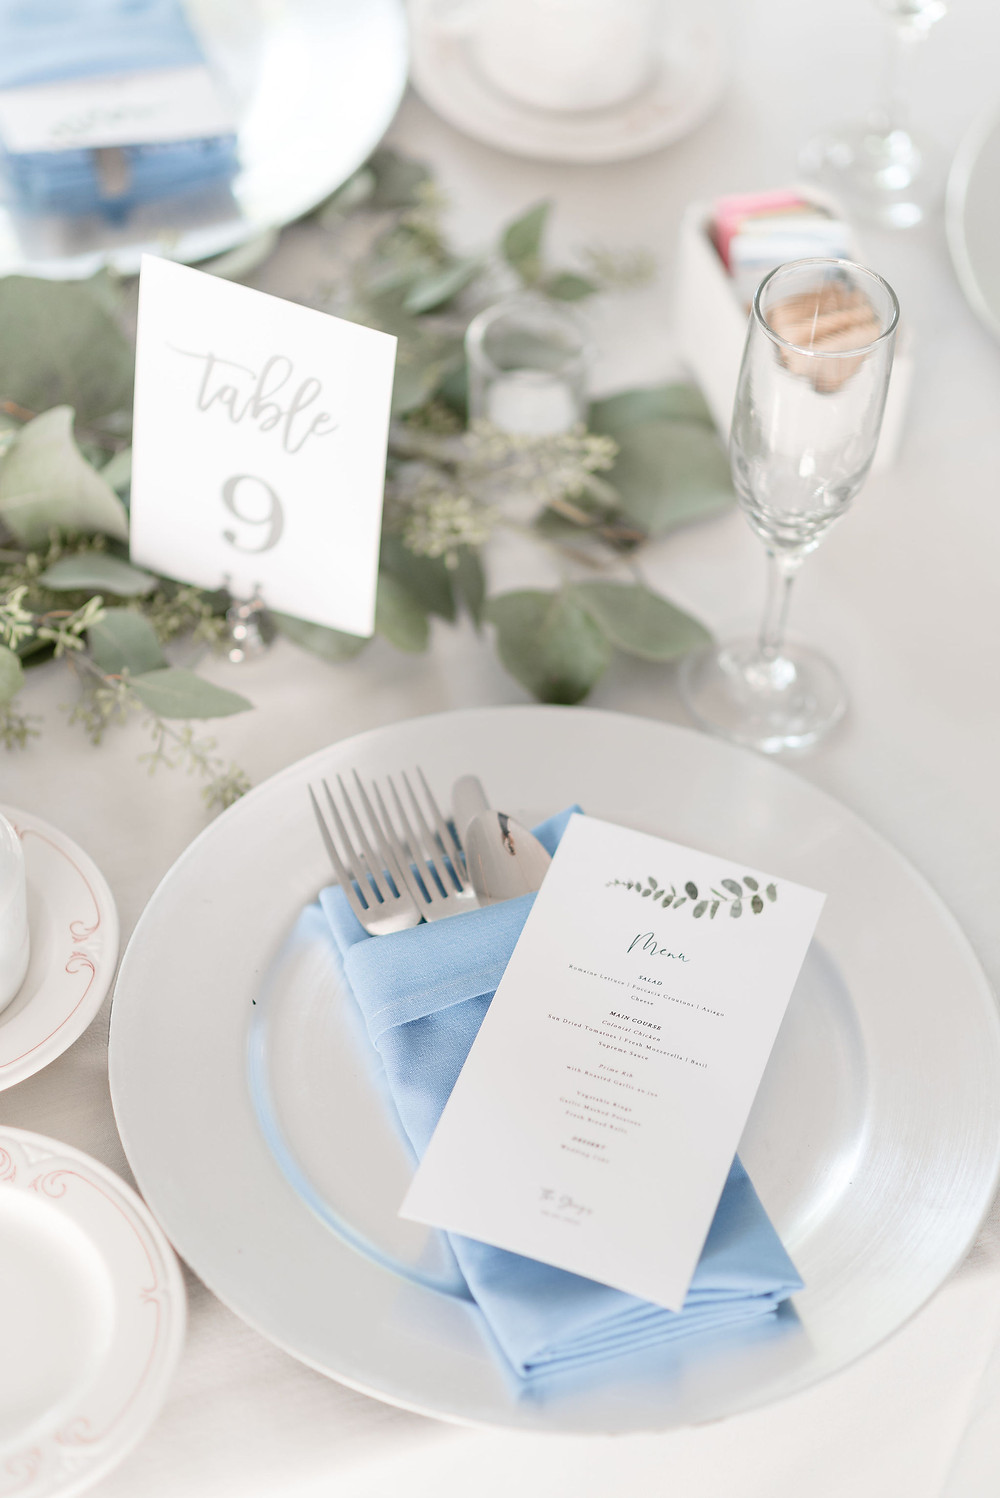 table place setting detail photo with menu, table number, napkins